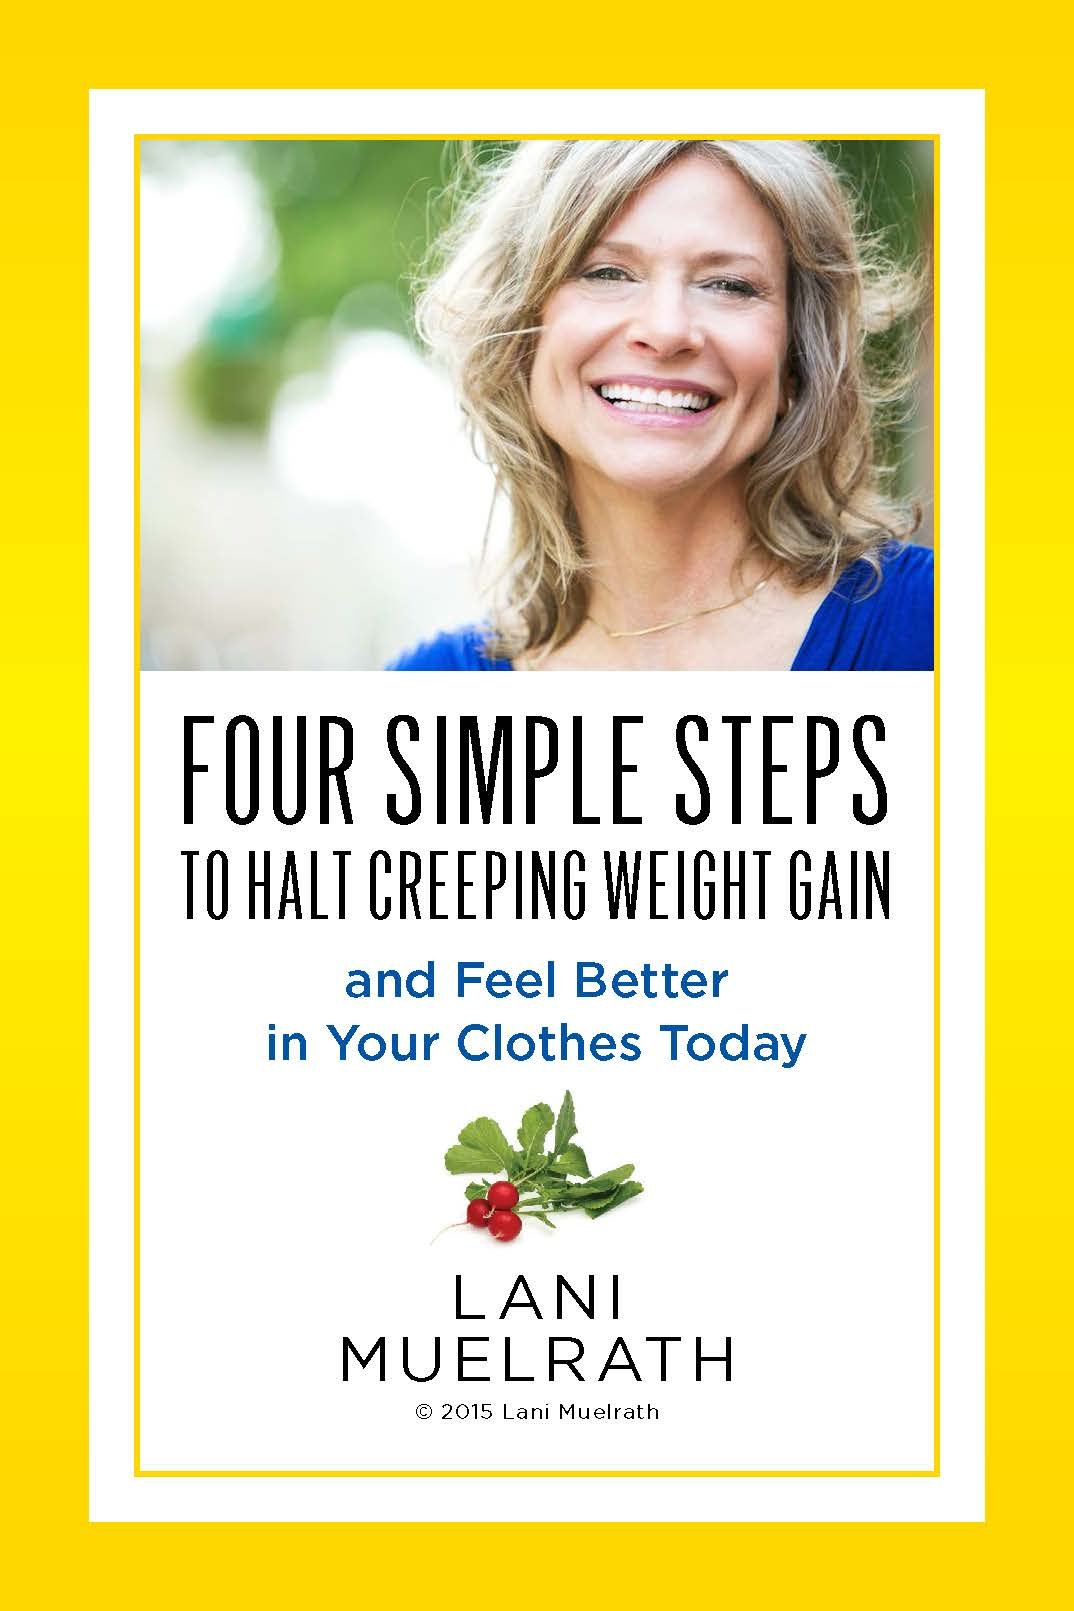 4 Steps To Success: Four Steps To Halt Creeping Weight Gain And Feel Better In